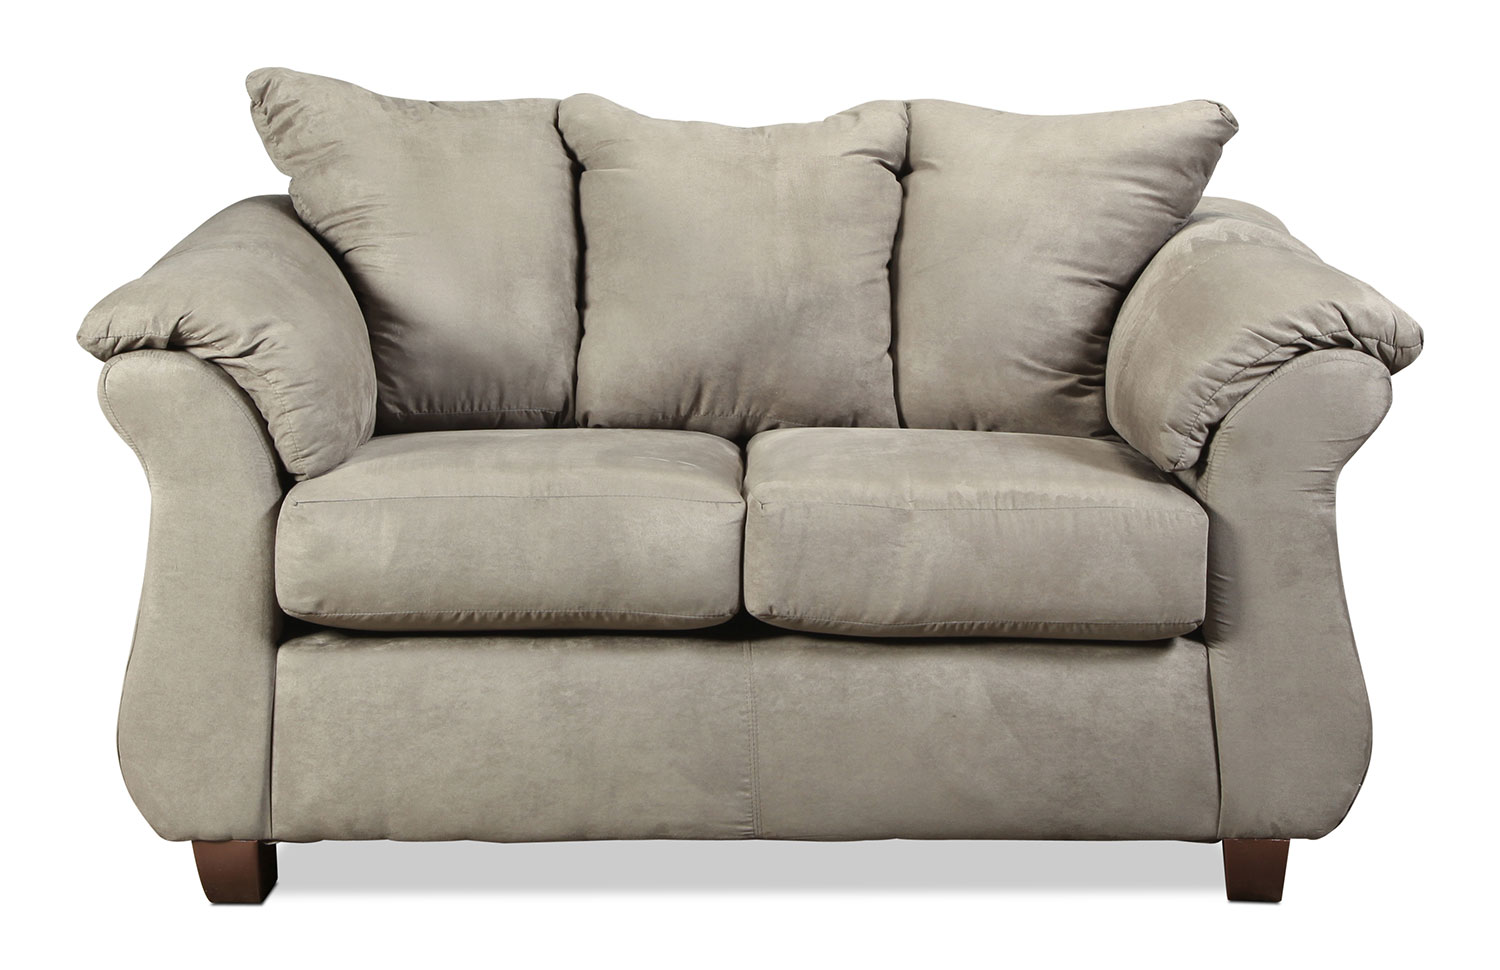 Living Room Furniture - Manhattan Loveseat - Grey